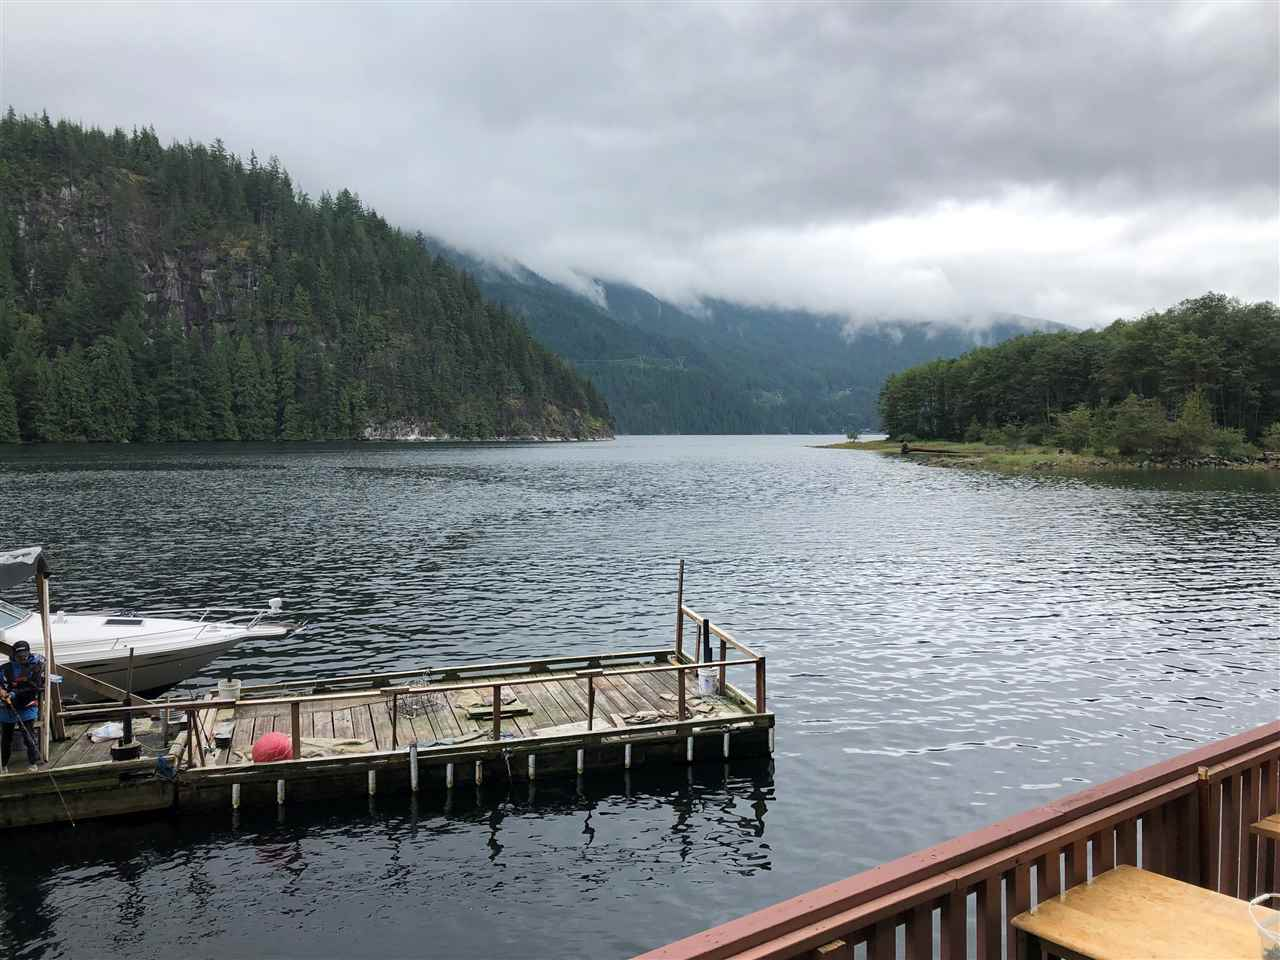 824 INDIAN ARM - MLS® # R2399385